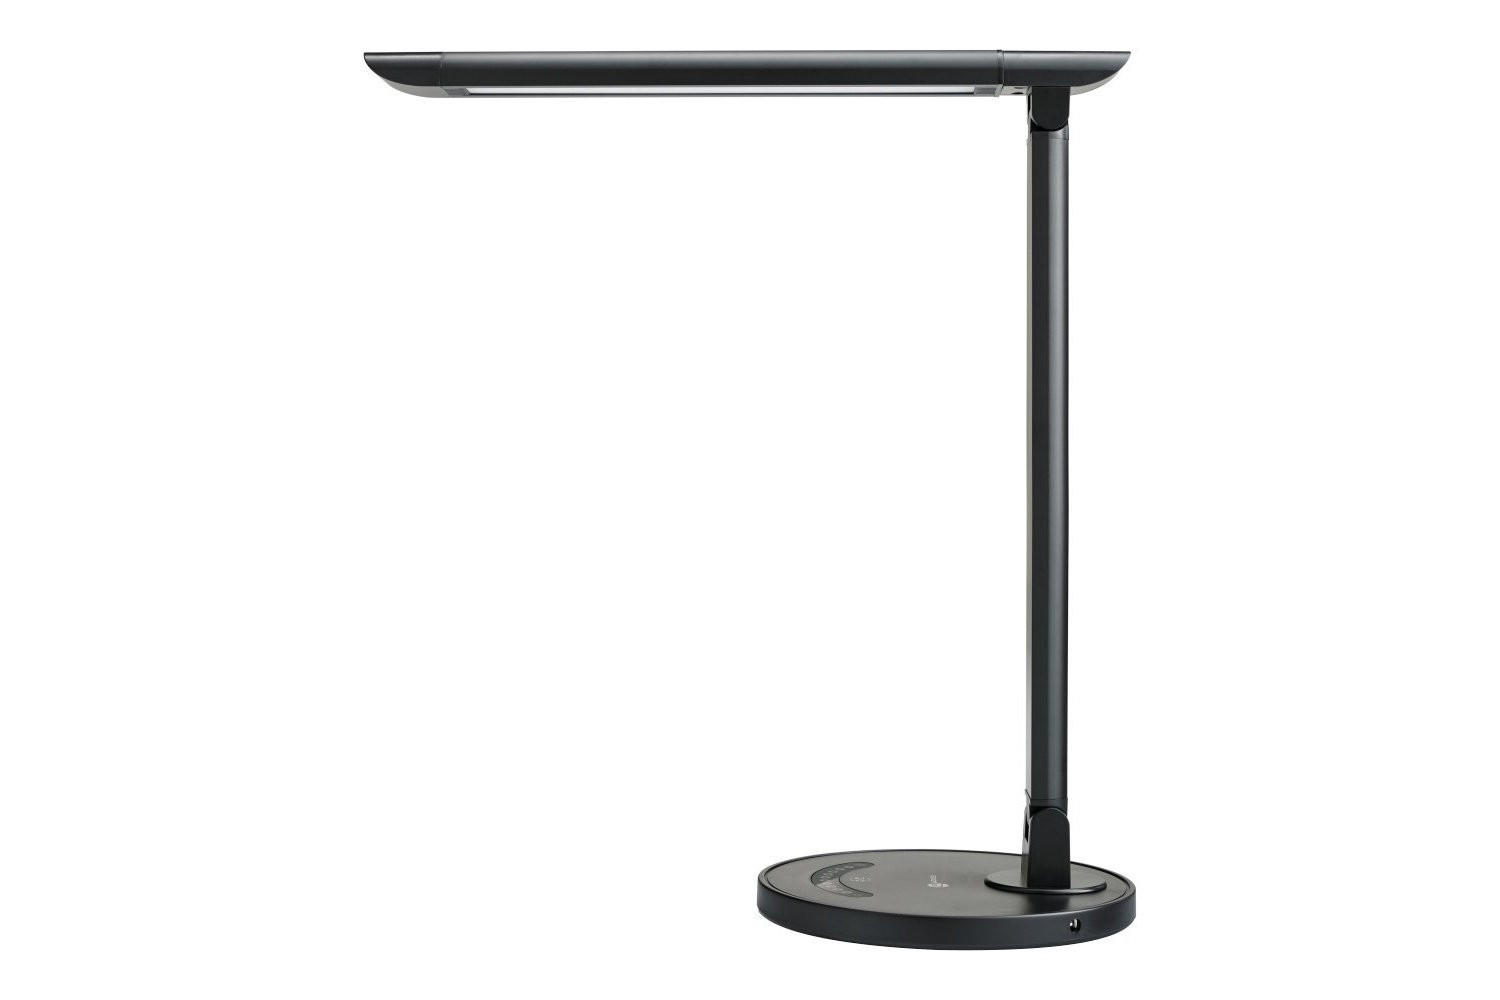 Best ideas about Tao Tronics Led Desk Lamp . Save or Pin 15 Best Gad s That Every Student Needs Now.